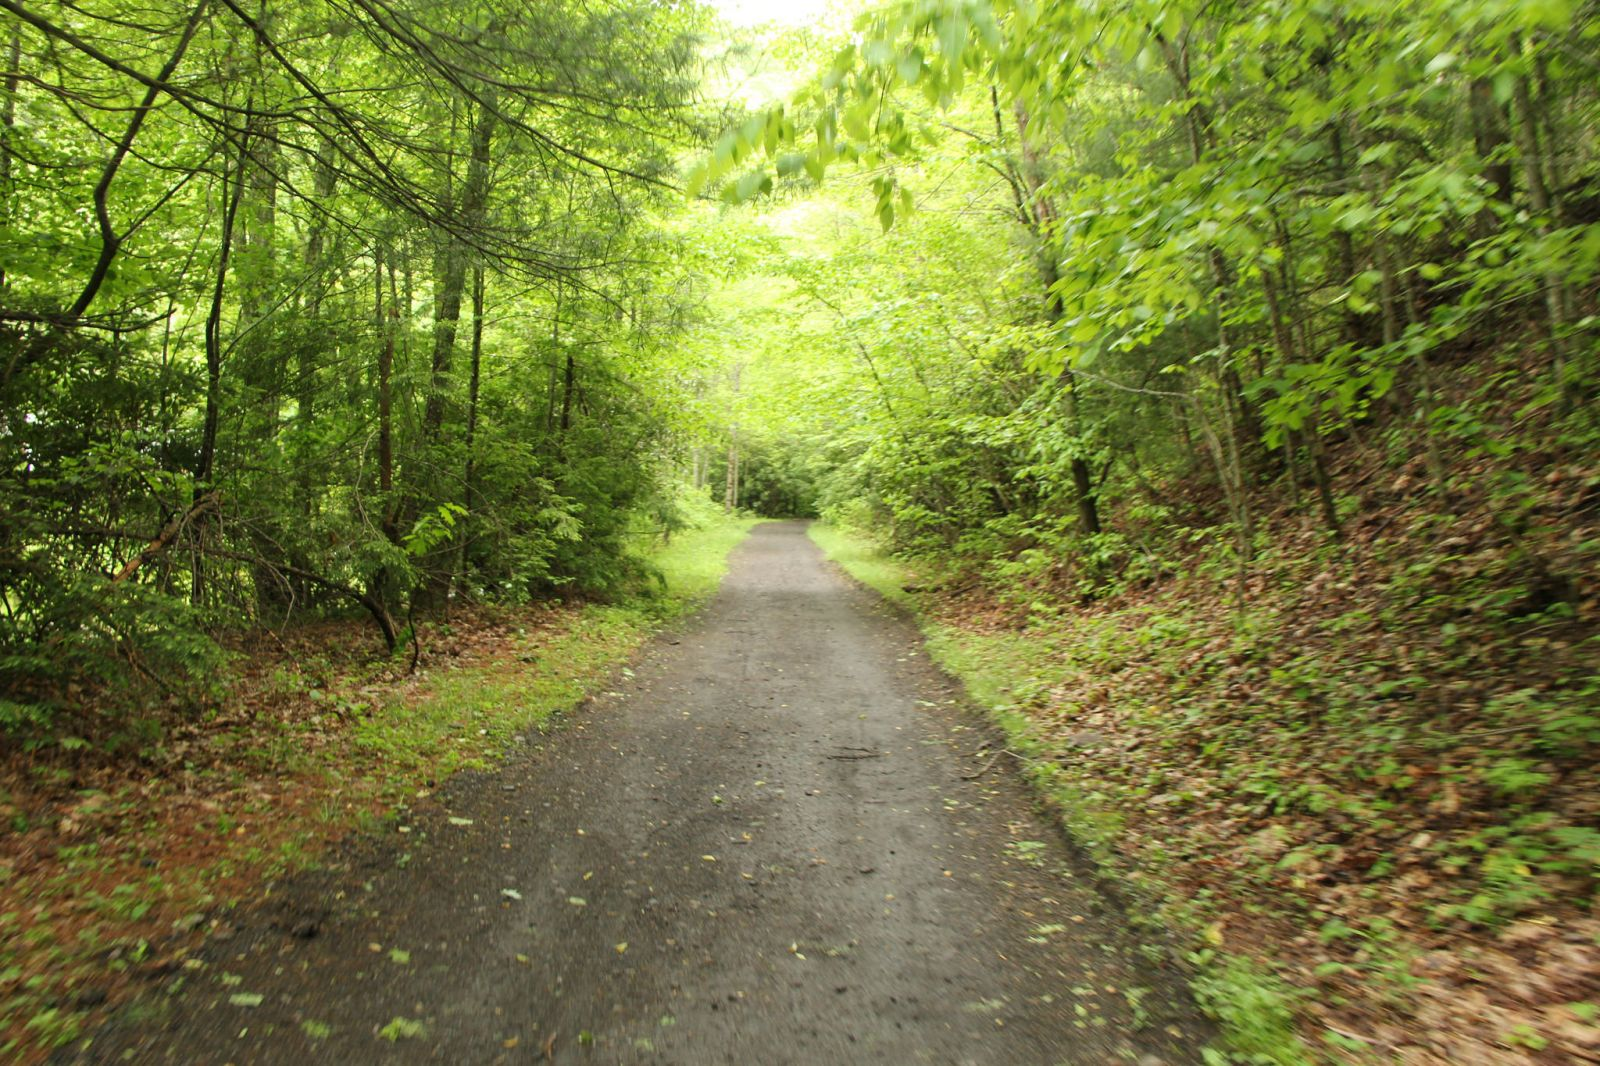 Cycling the Virginia Creeper Trail will take you through historic areas of the beautiful state